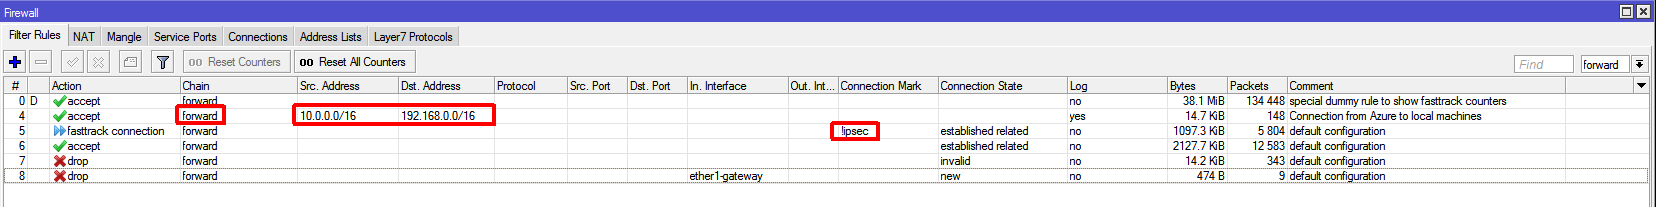 Filter table configuration for let in traffic from Azure and exclude IPsec from fasttrack.